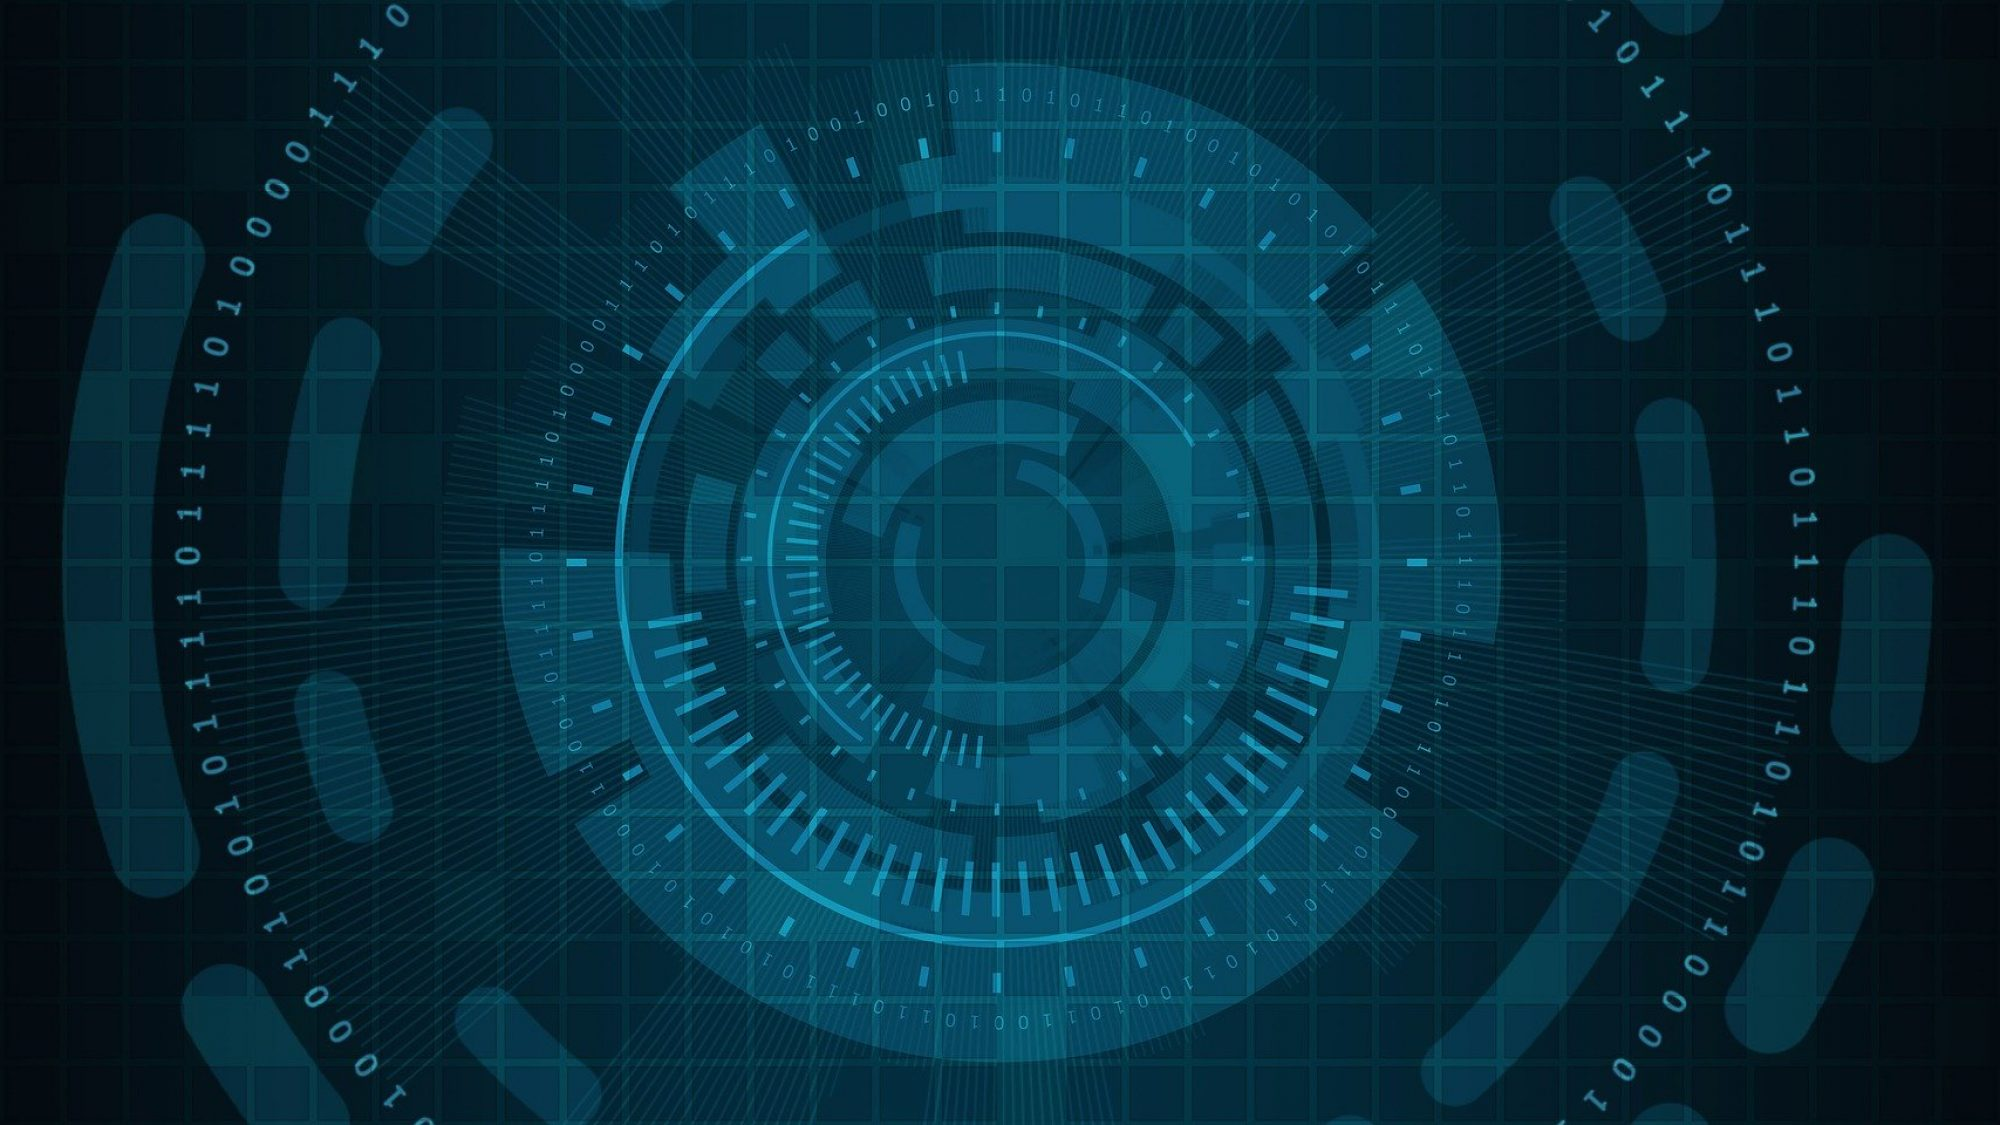 Cyber operations binary code